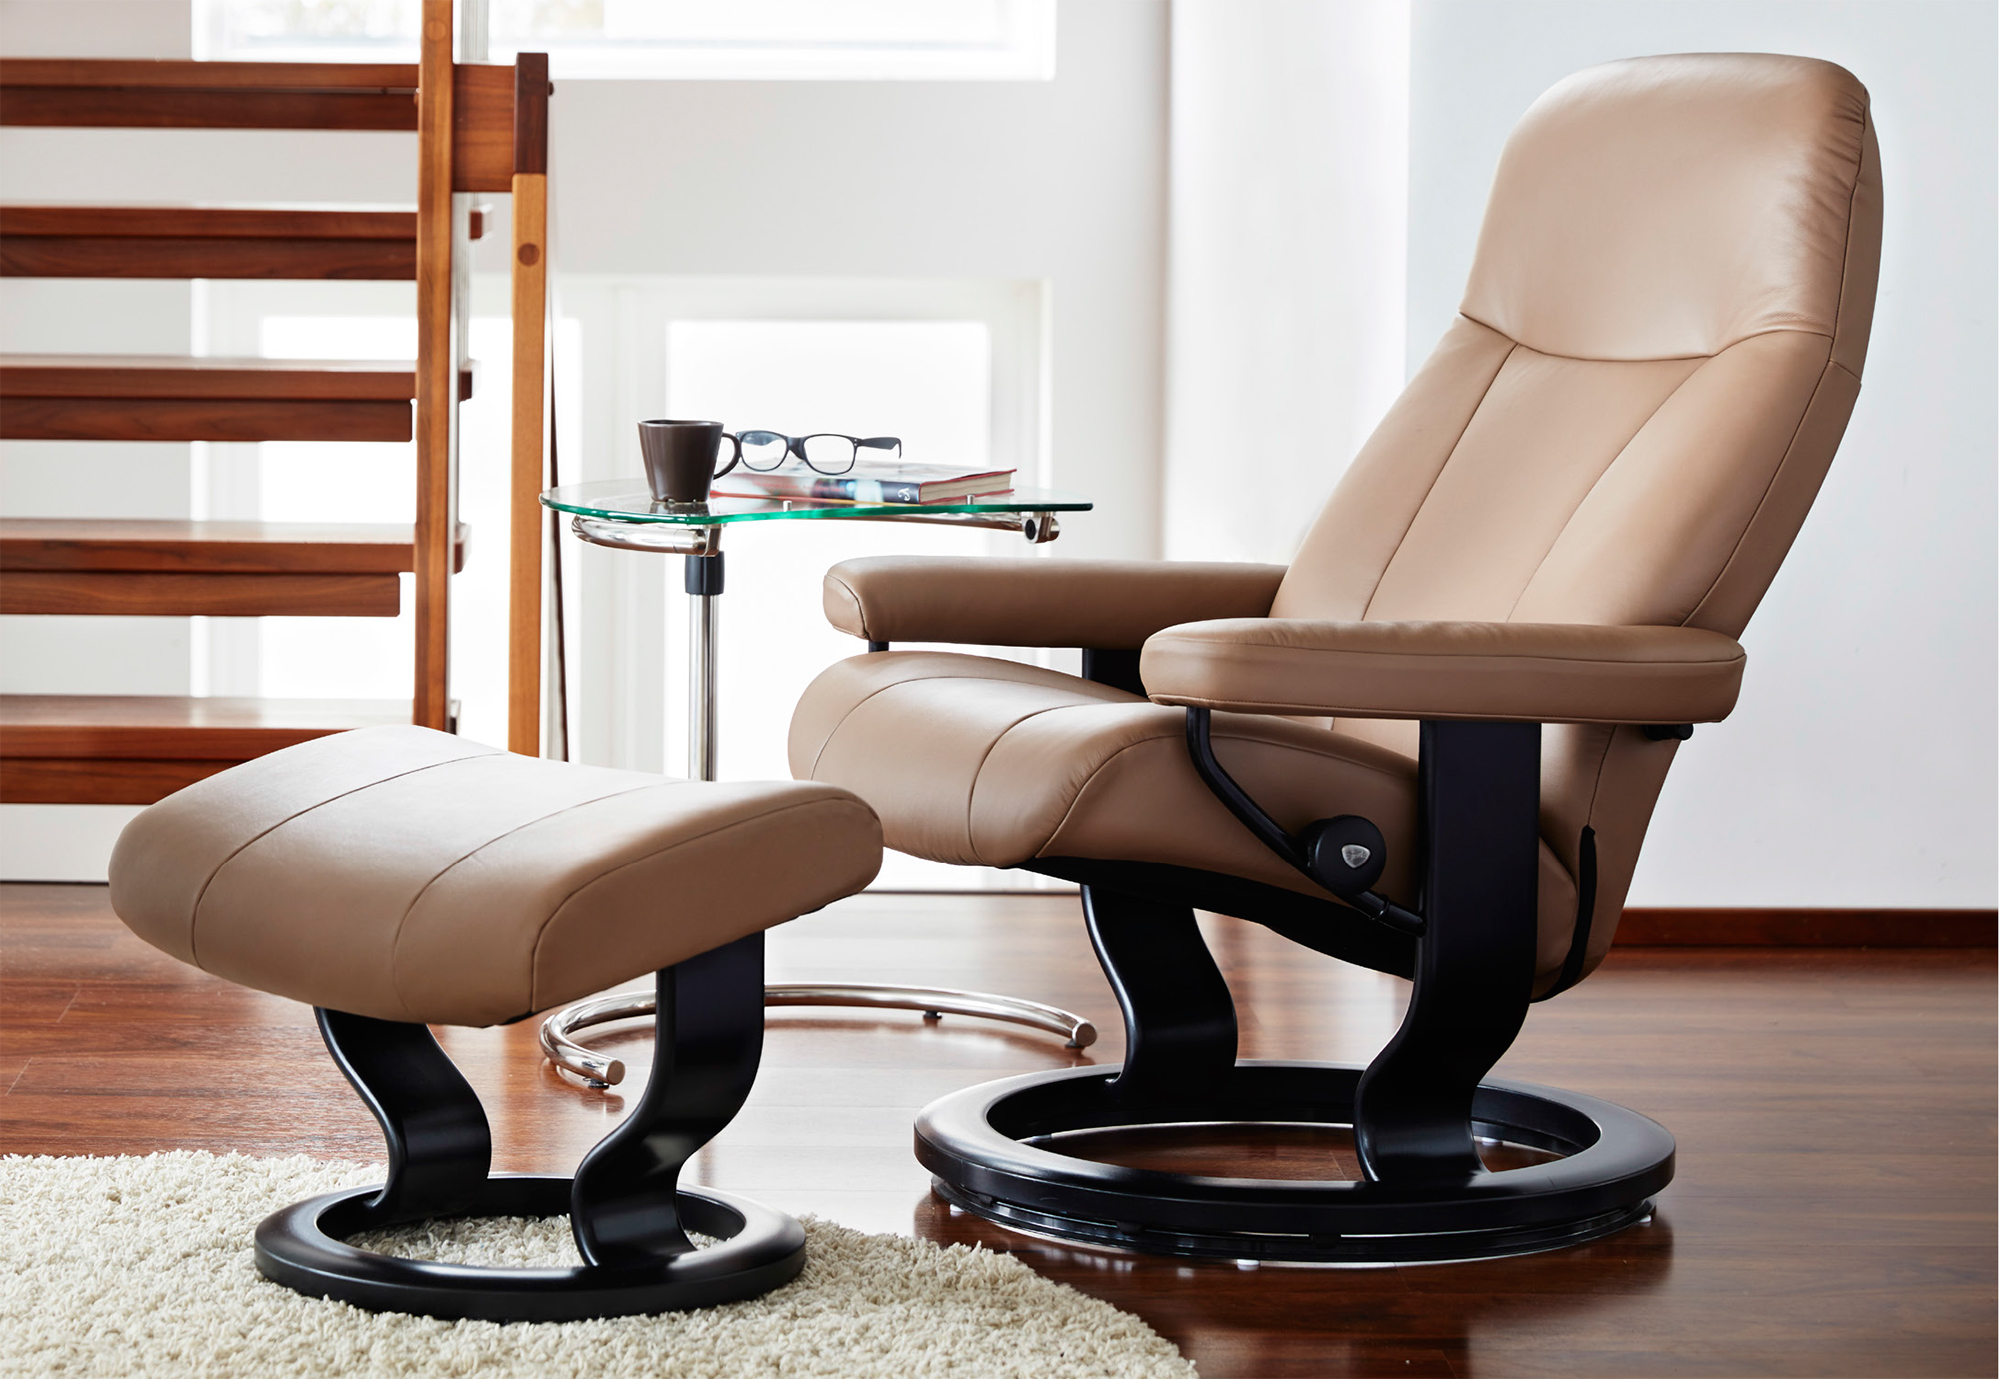 Stressless Garda Recliner Chair and Ottoman by Ekornes Garda